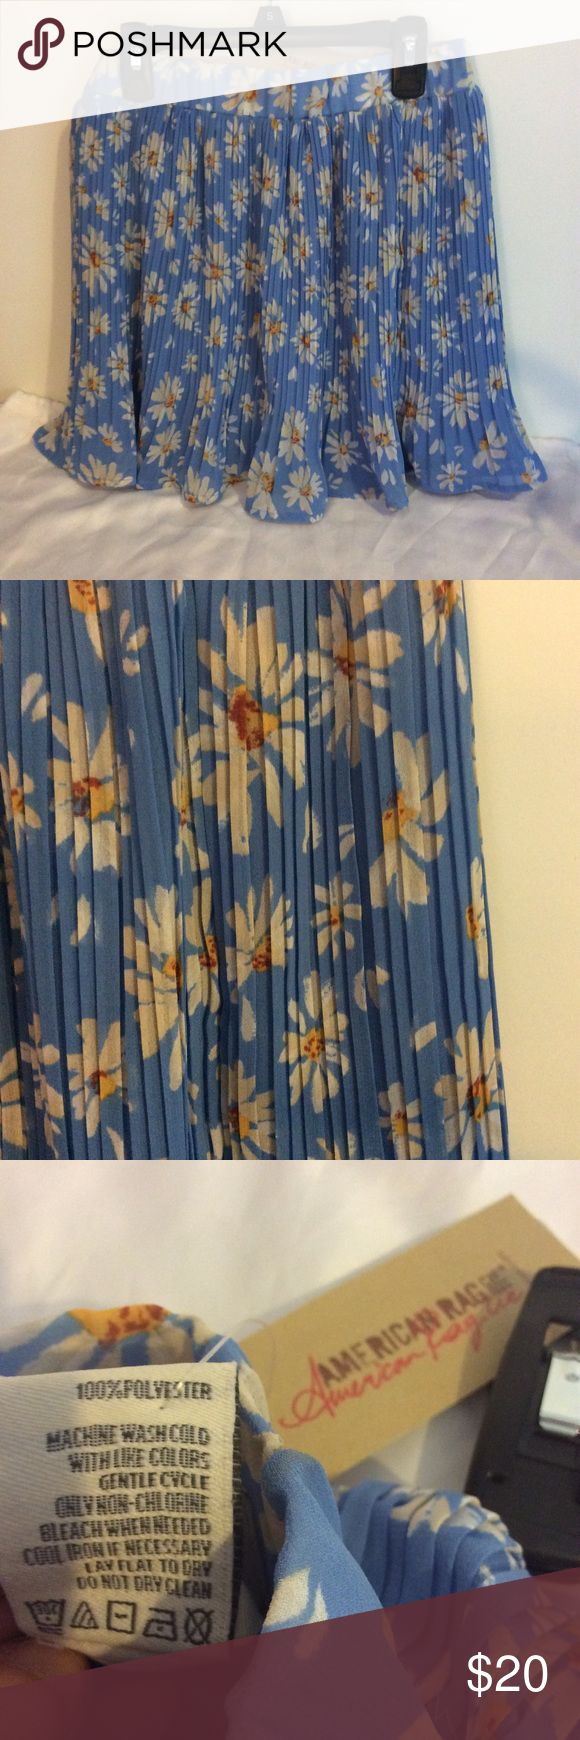 Macy's American Rag Blue Daisy Skirt ~ Size S NWT Macy's American Rag clothing line. Blue skirl with happy Daisy print. Blue slip underneath. Size Small. 100% Polyester. Mashing Wash. Made in China. American Rag Skirts